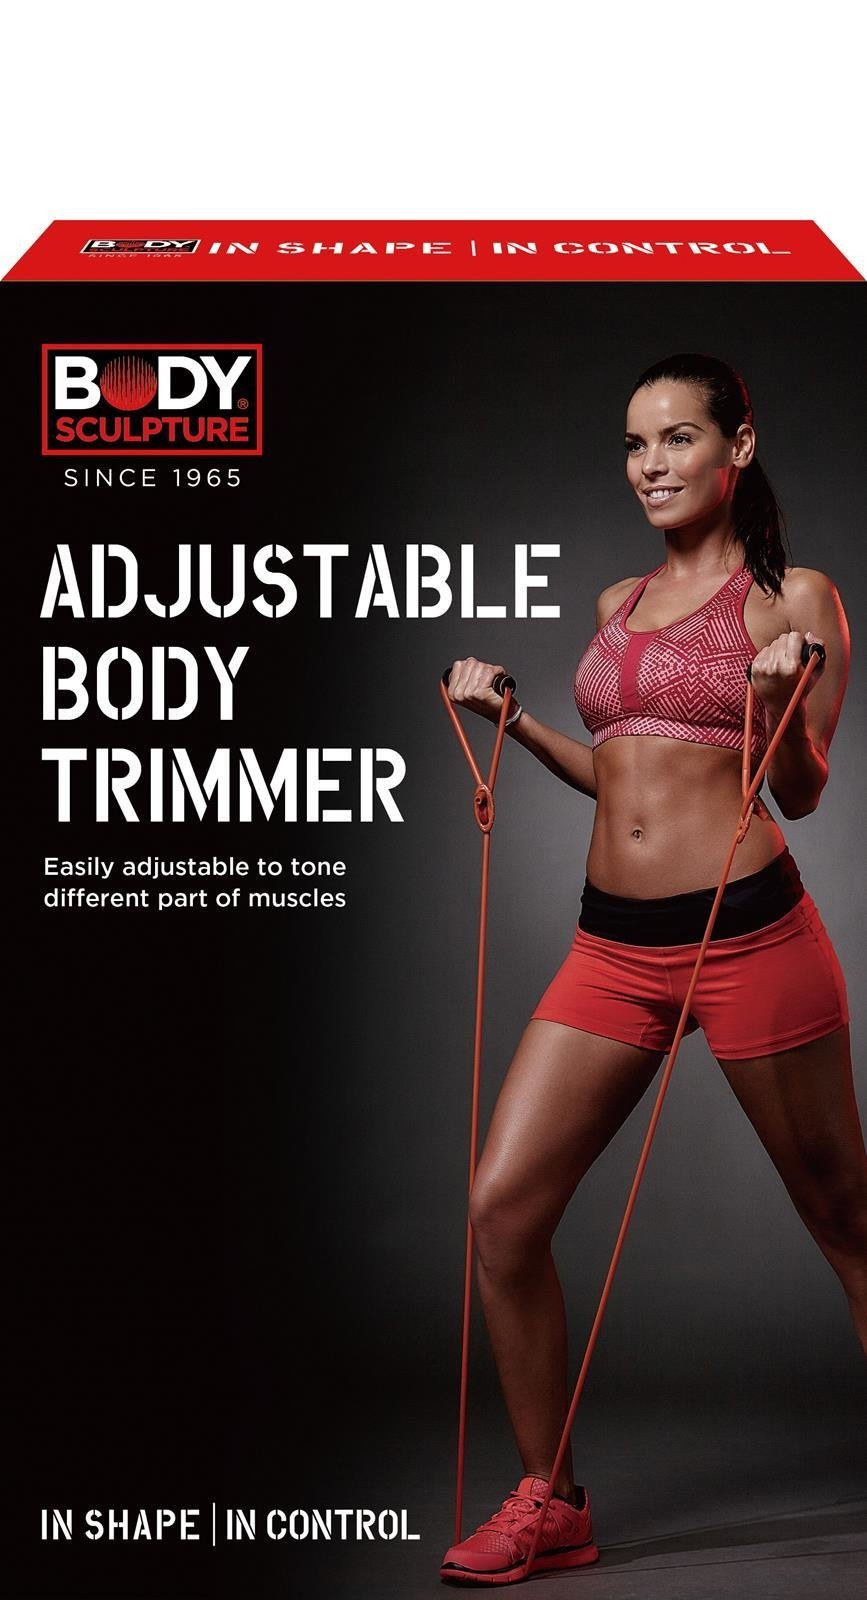 Ekspander gumowy body trimmer z regulacją BB 2022 - Body Sculpture